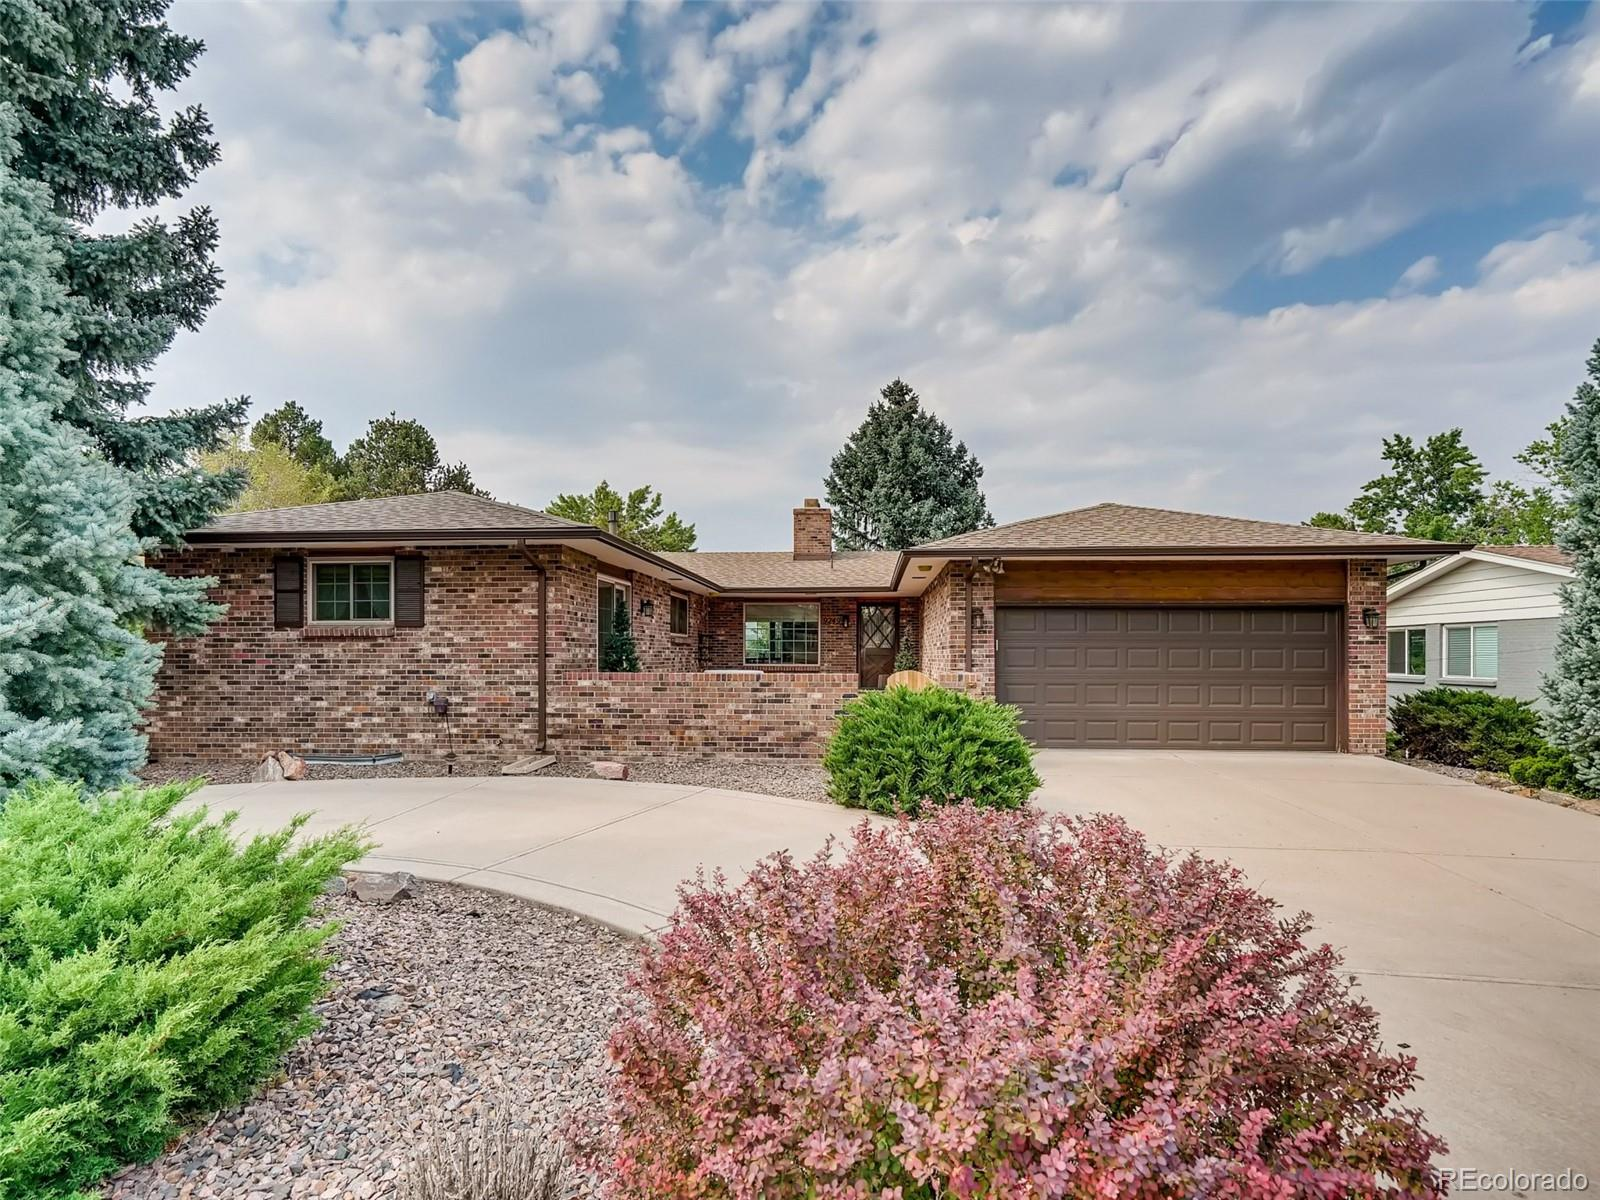 All brick sprawling ranch with walkout basement. Close to Old Town Arvada and new stores and shopping close by on Ralston.  Light rail access close by.   Original owners of custom built home took very good care of this jem.  Tons of square footage with lots of opportunity to make your own.  Completely fenced yard with gorgeous courtyard patio area on circle driveway for plenty of parking.